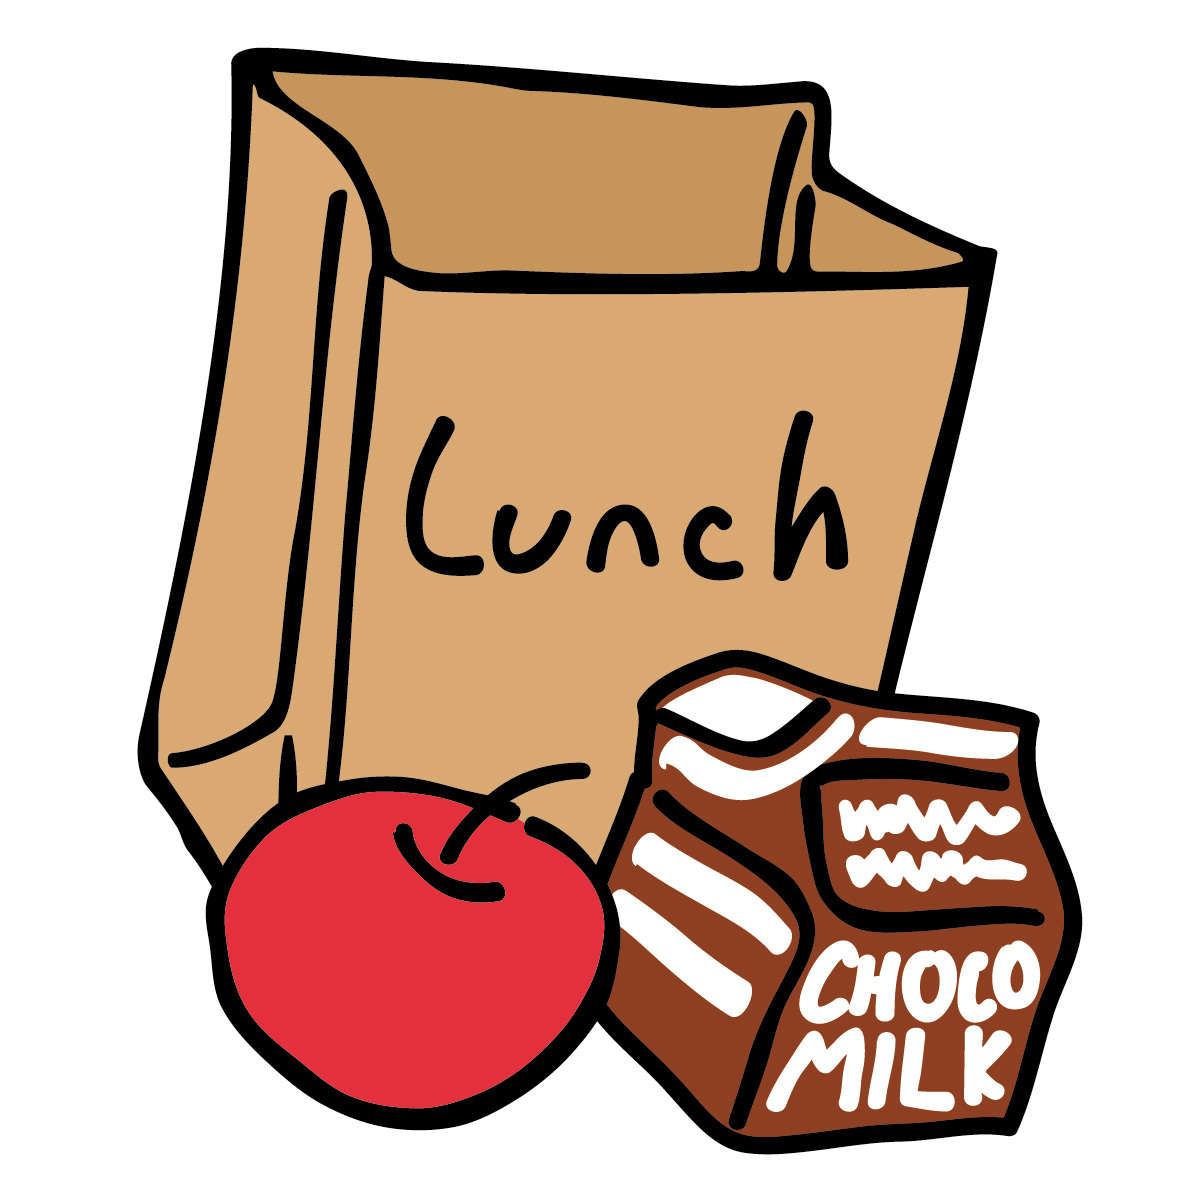 Lunchbox clipart luncheon. Free lunch pictures clipartix